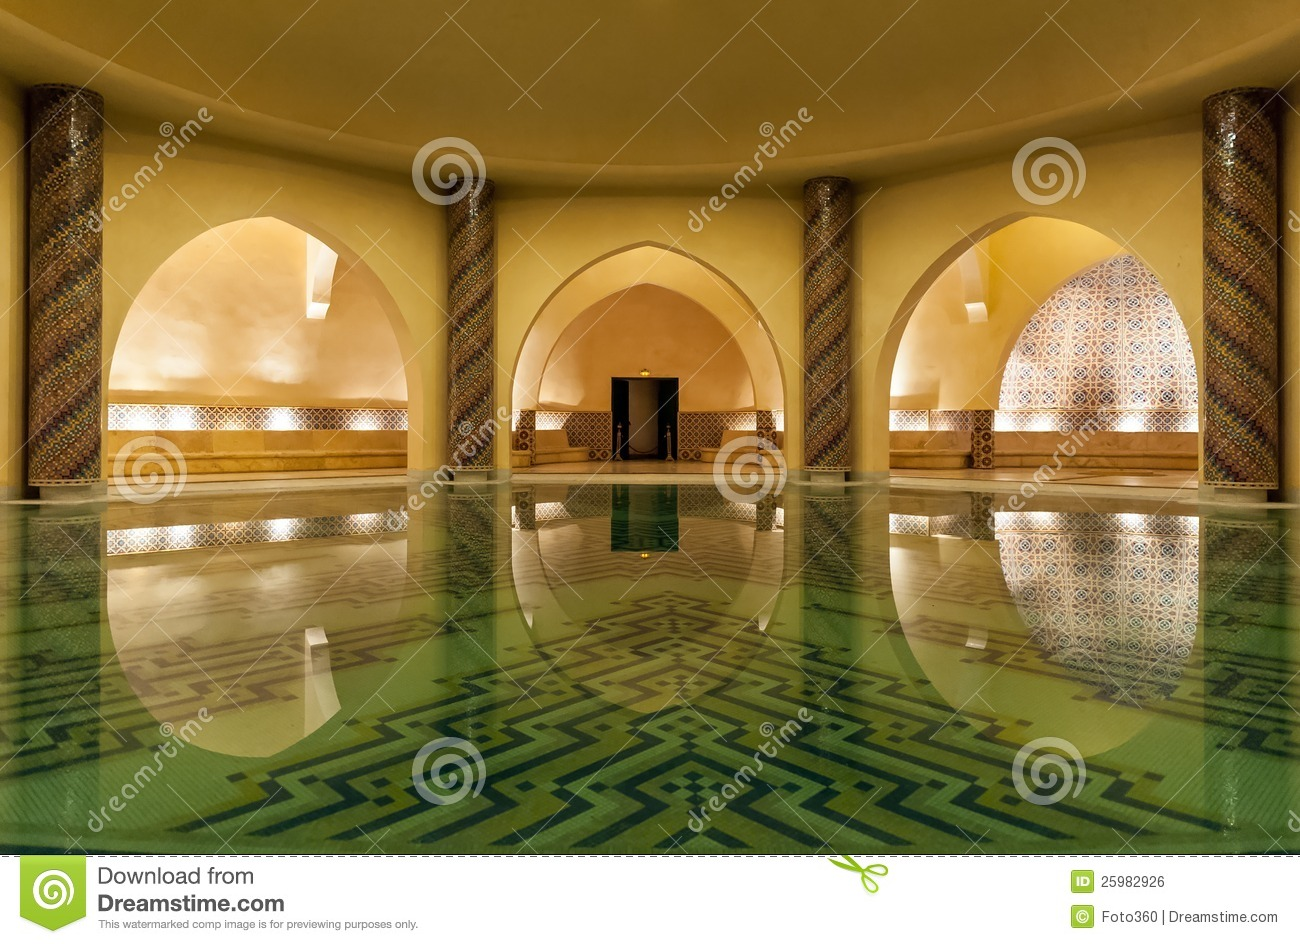 Hammam of hassan ii mosque in casablanca morocco stock for Mosquee hassan 2 architecture